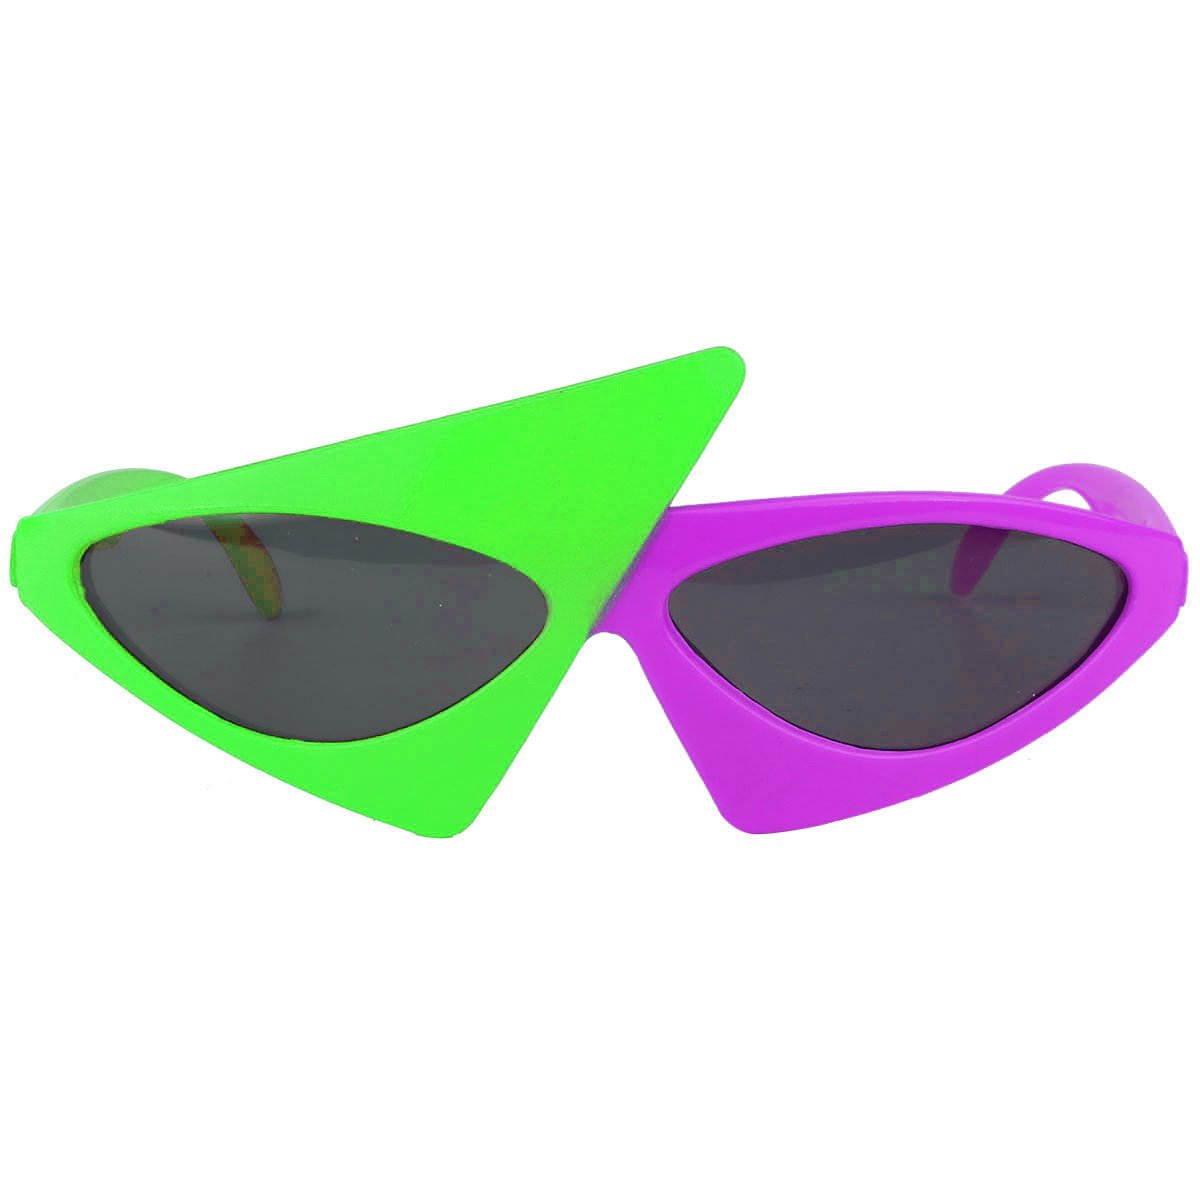 Amazon.com: YiZYiF 80s Asymmetric Glasses Novelty Funny 2 ...